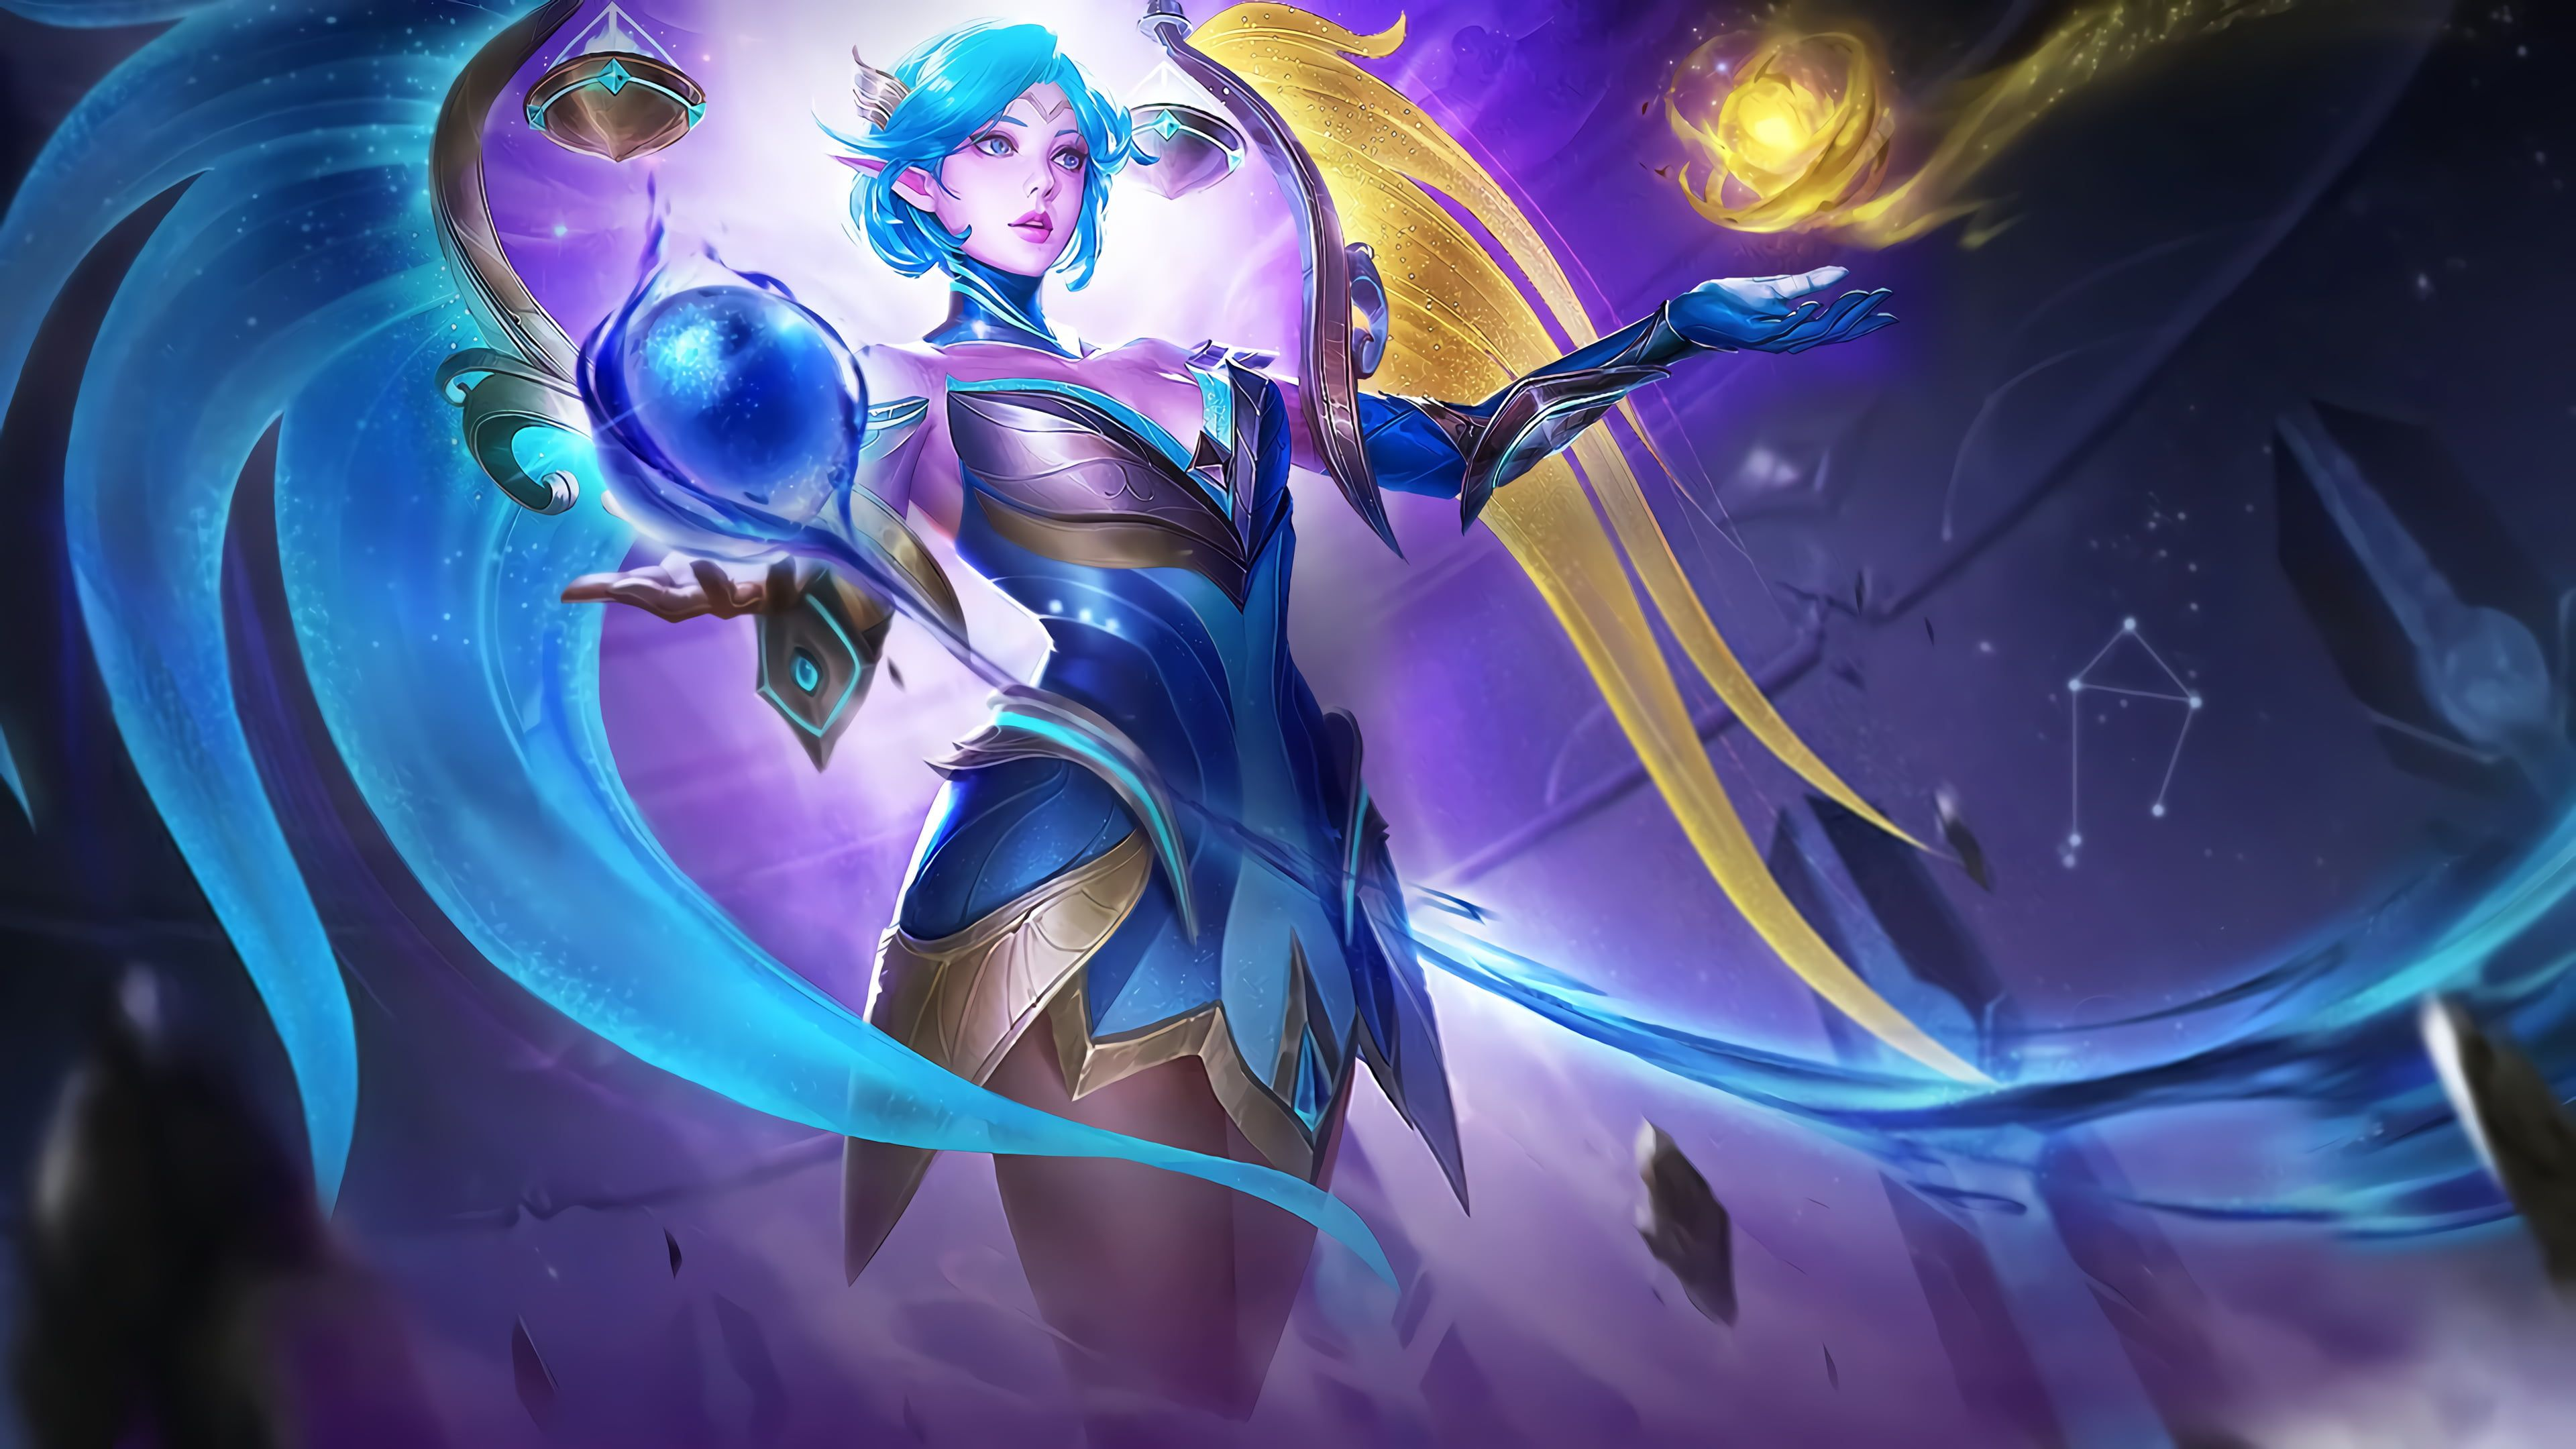 Mobile Legends Lunox Libra Zodiac Fantasy Girl Wings Digital Art Moba Games Art 4k Wallpaper Hdwal In 2020 Mobile Legend Wallpaper Anime Wallpaper Fantasy Girl